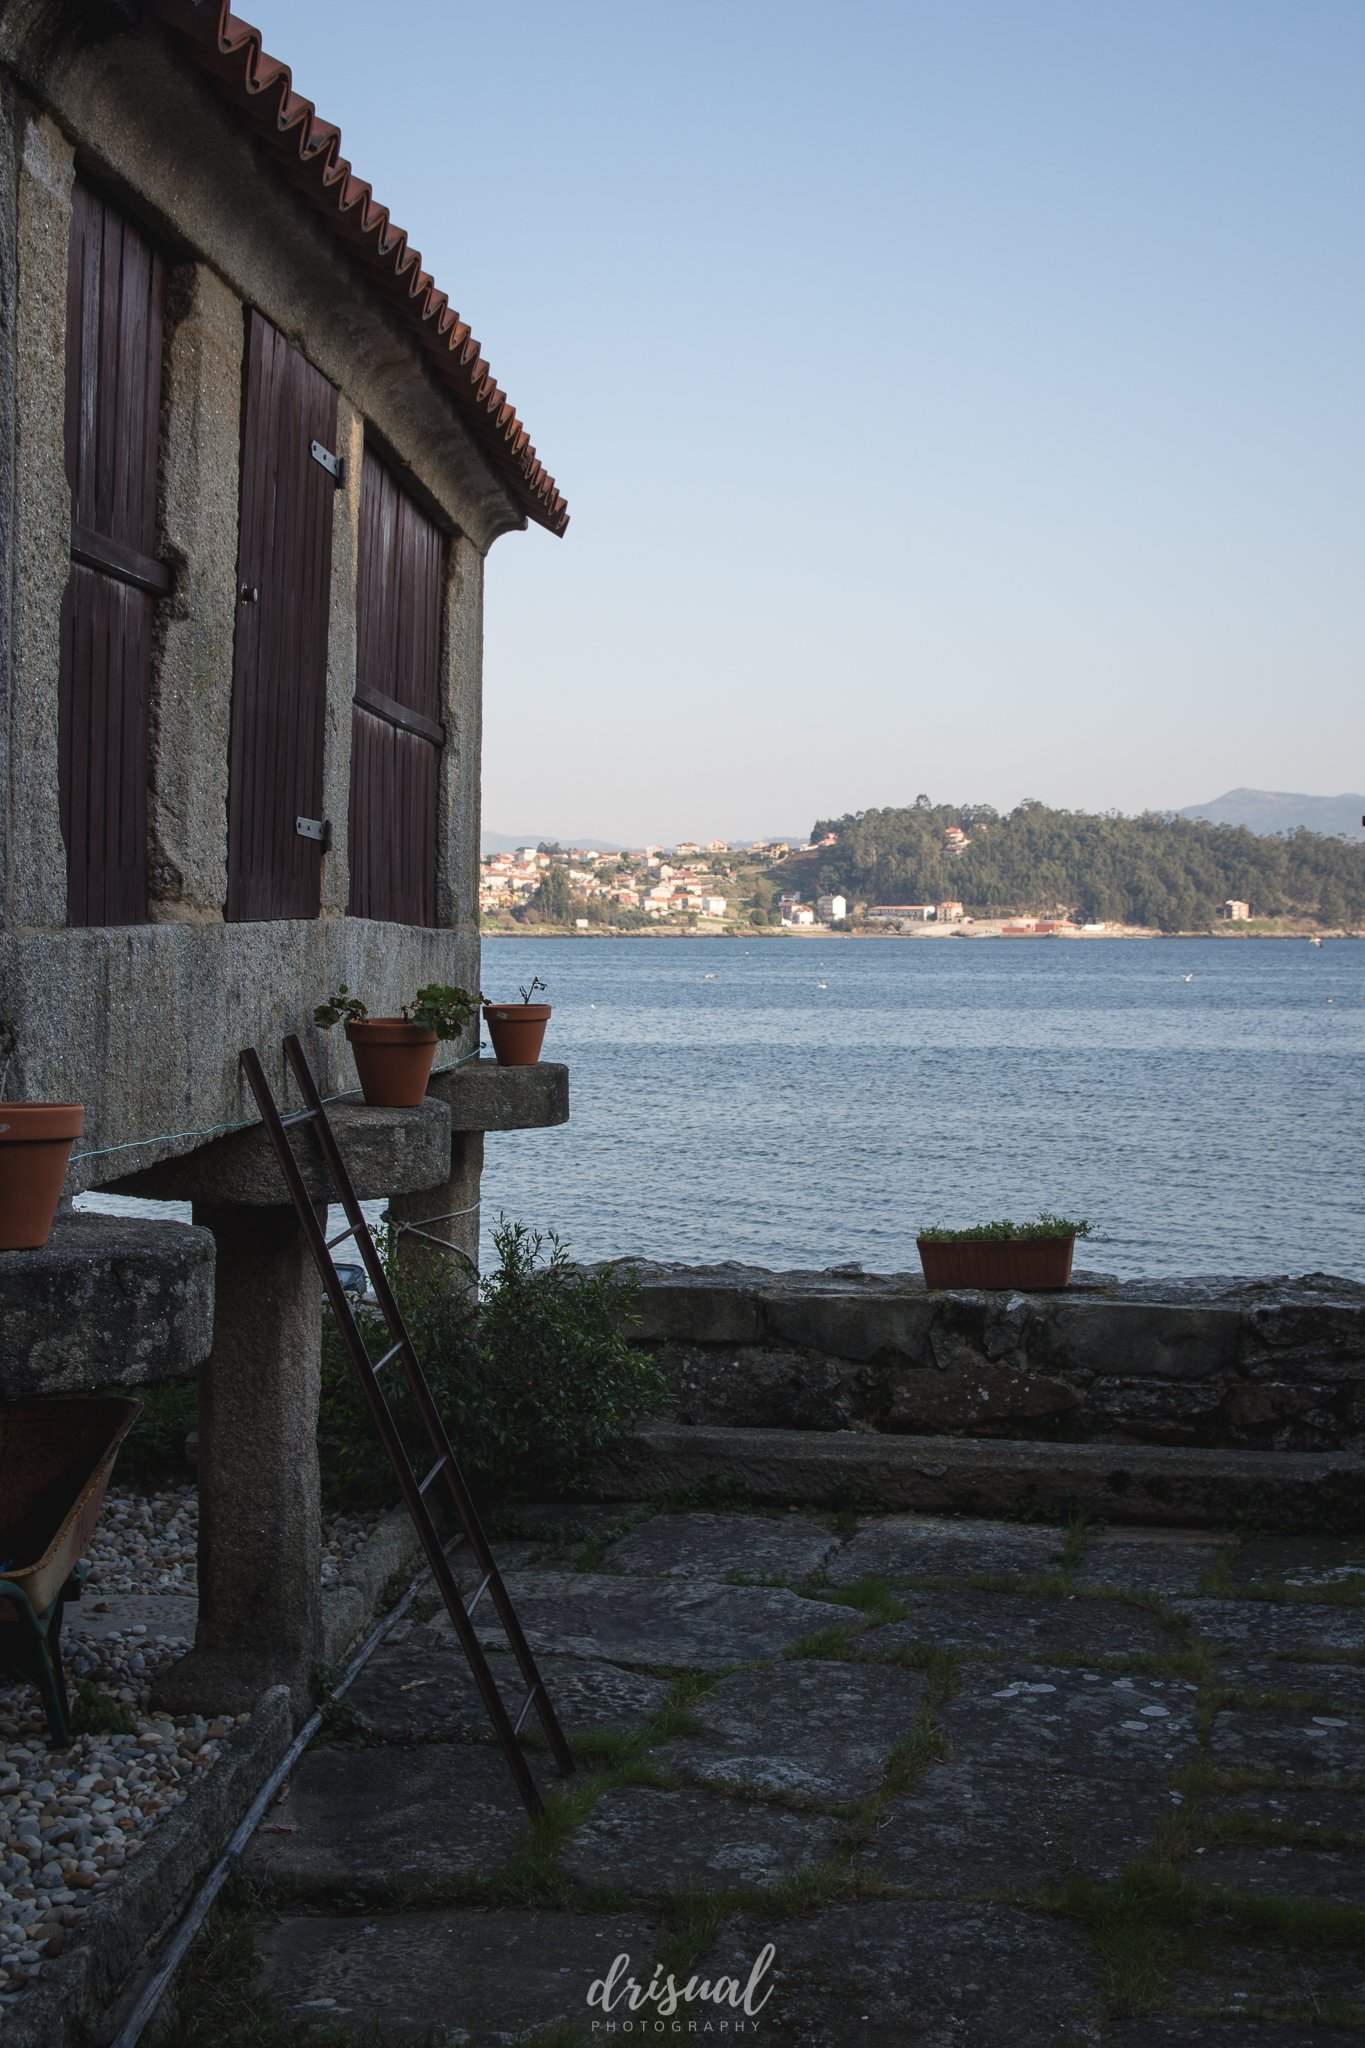 combarro, horreo con vistas al mar